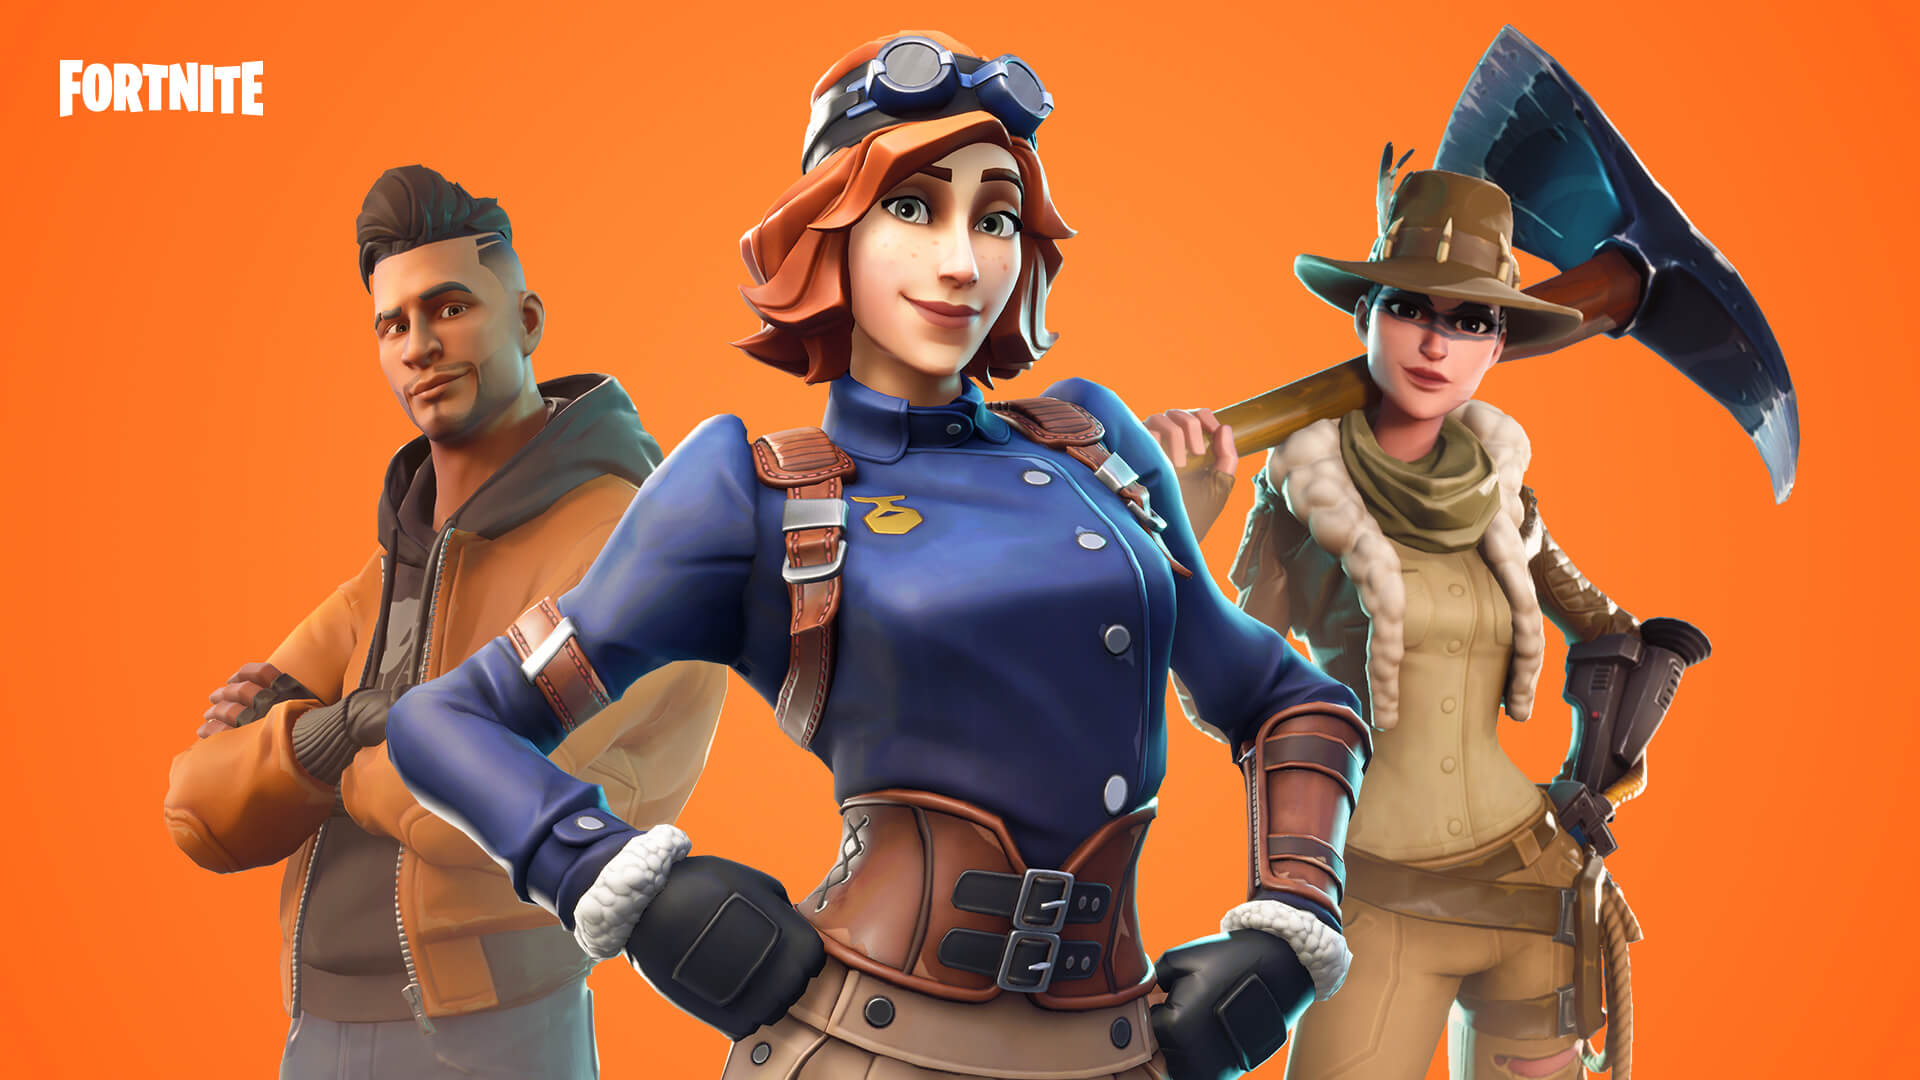 Fortnite: Update 16.00 starts Season 6 - Patch Notes with the changes